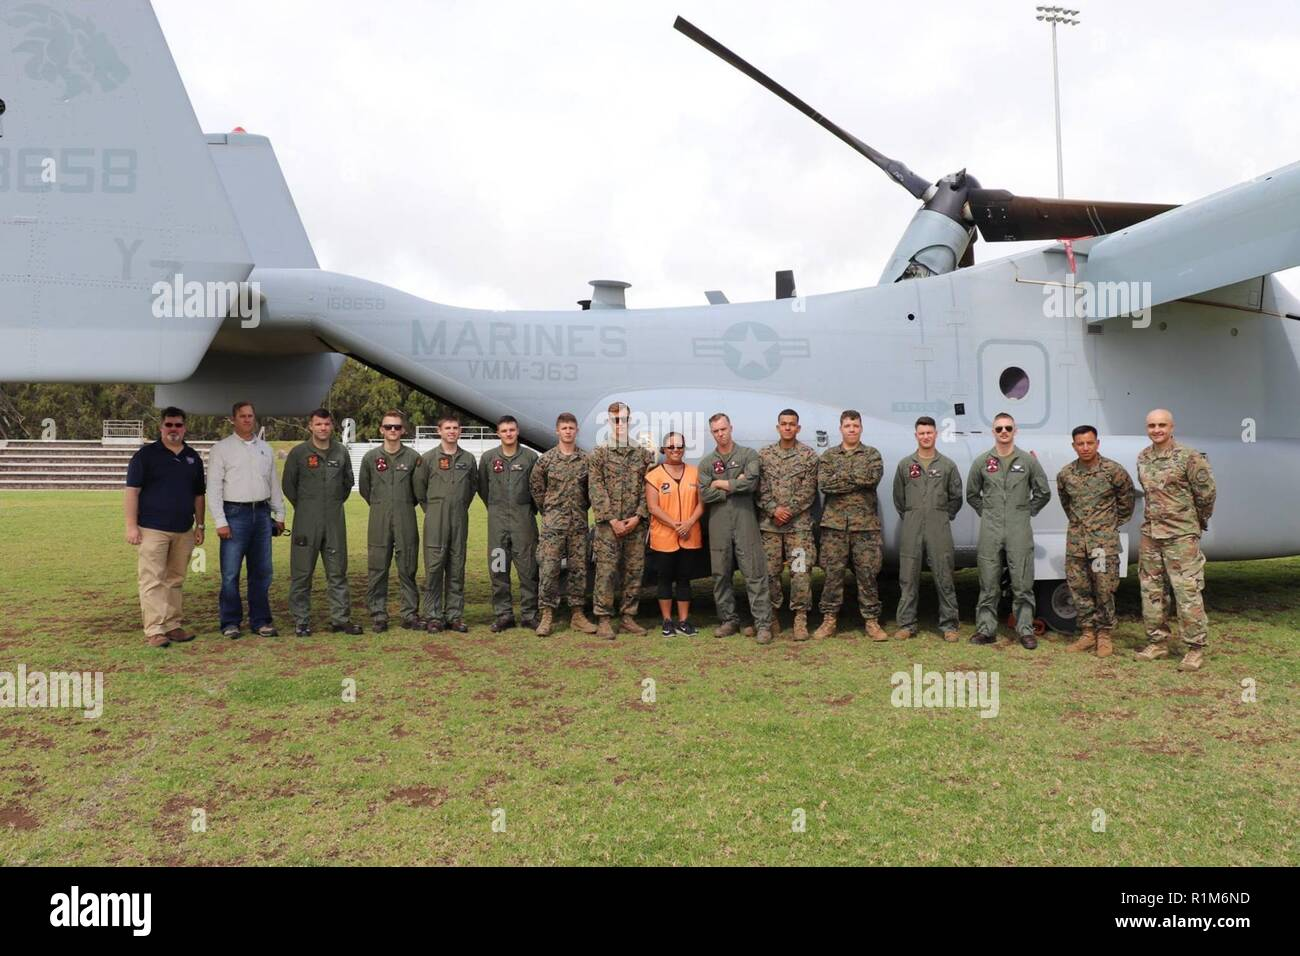 """U.S. Army Garrison Pohakuloa leadership and U.S. Marines with the Marine Medium Tiltrotor Squadron, VMM-363, nicknamed the """"Lucky Red Lions,"""" from Marine Corps Base Hawaii stand in front of the MV-22B Osprey aircraft before the Waimea Fall Festival, at the Waimea District Park. Stock Photo"""